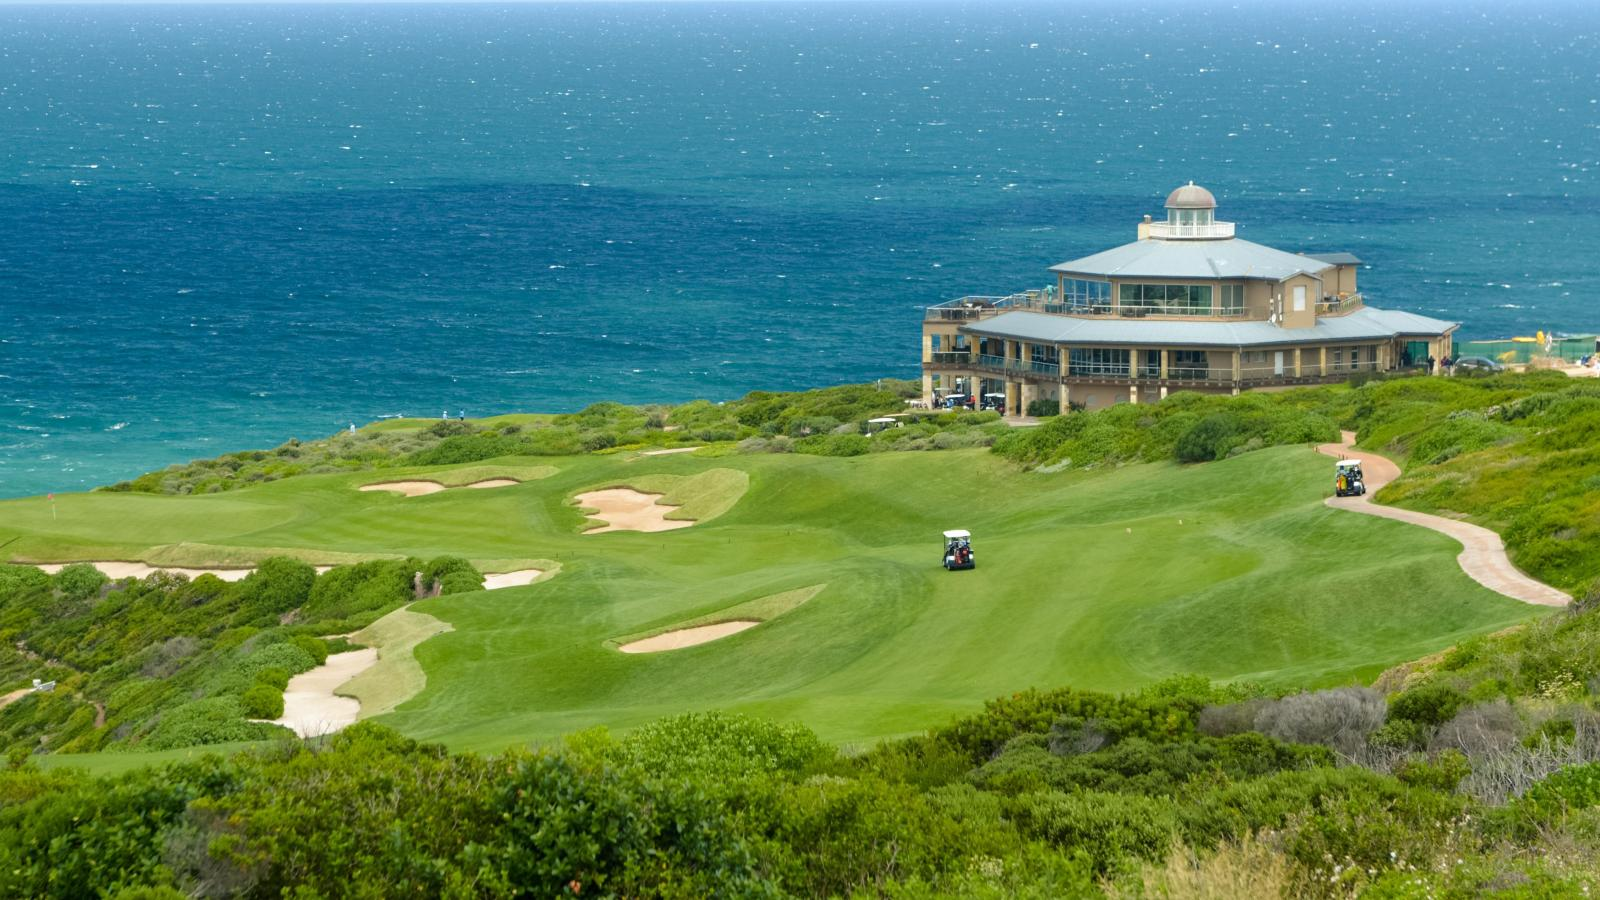 Day 5: GOLF AT PINNACLE POINT - This 18 hole championship golf course was designed by the well-known South African golf course architect Peter Matkovich who opened the course together with Top Irish Tour Golf Professional Darren Clarke in November 2006.